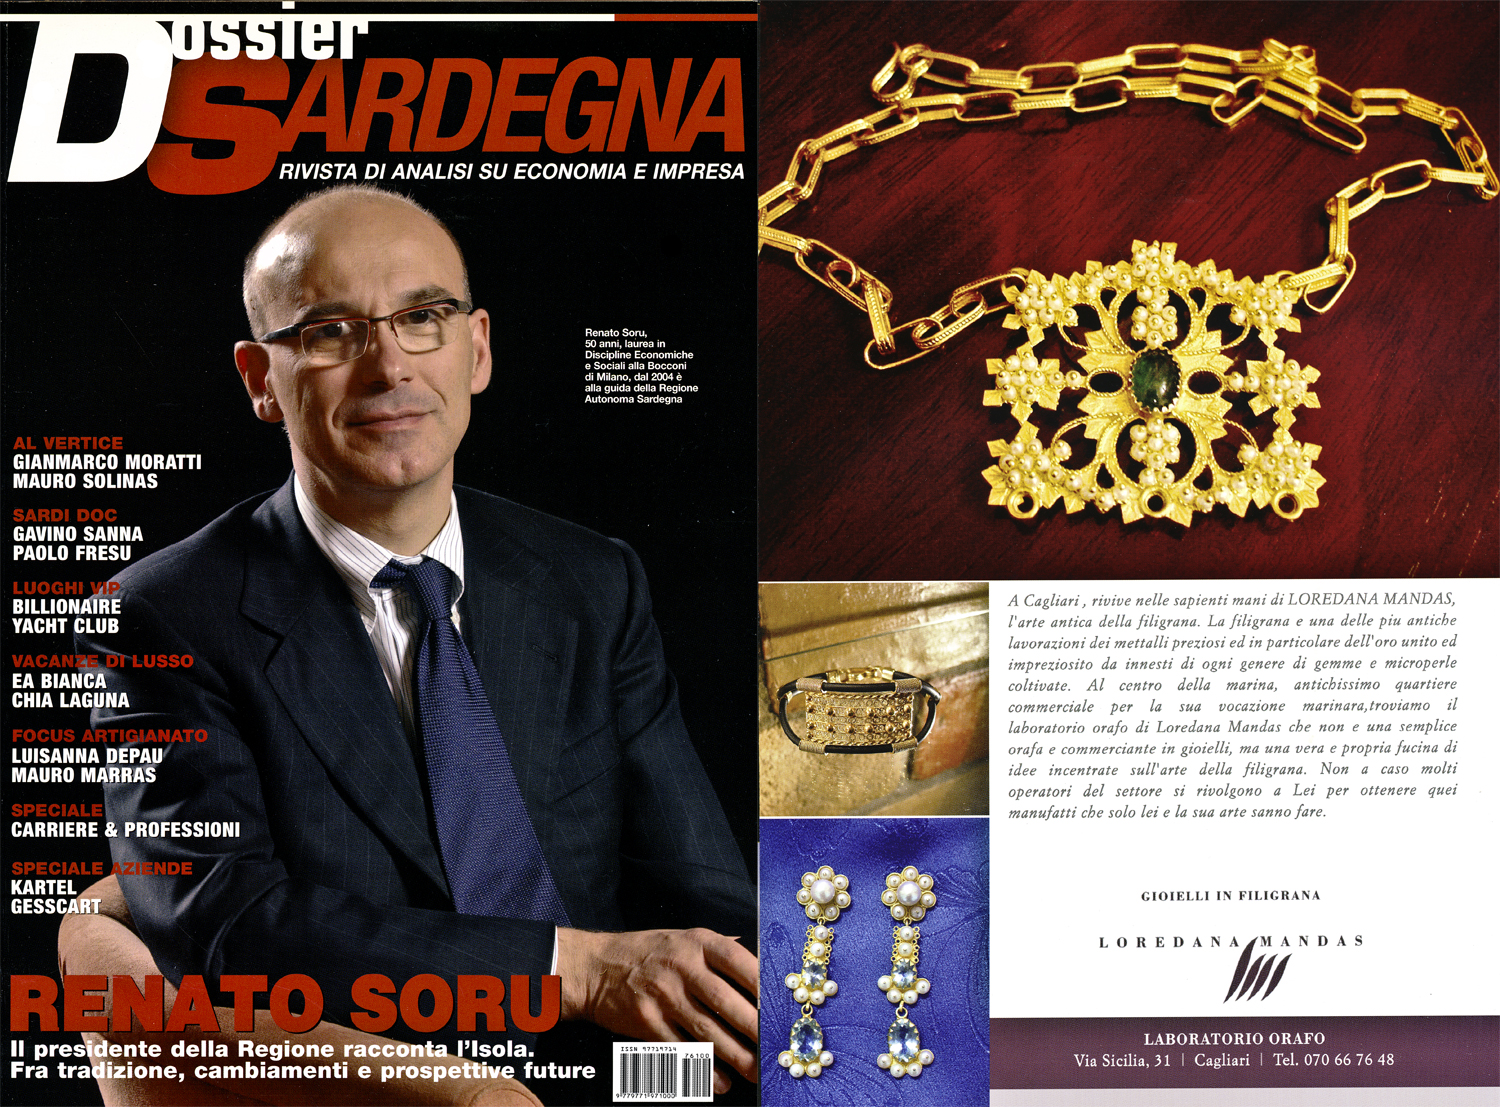 Review of DOSSIER SARDEGNA